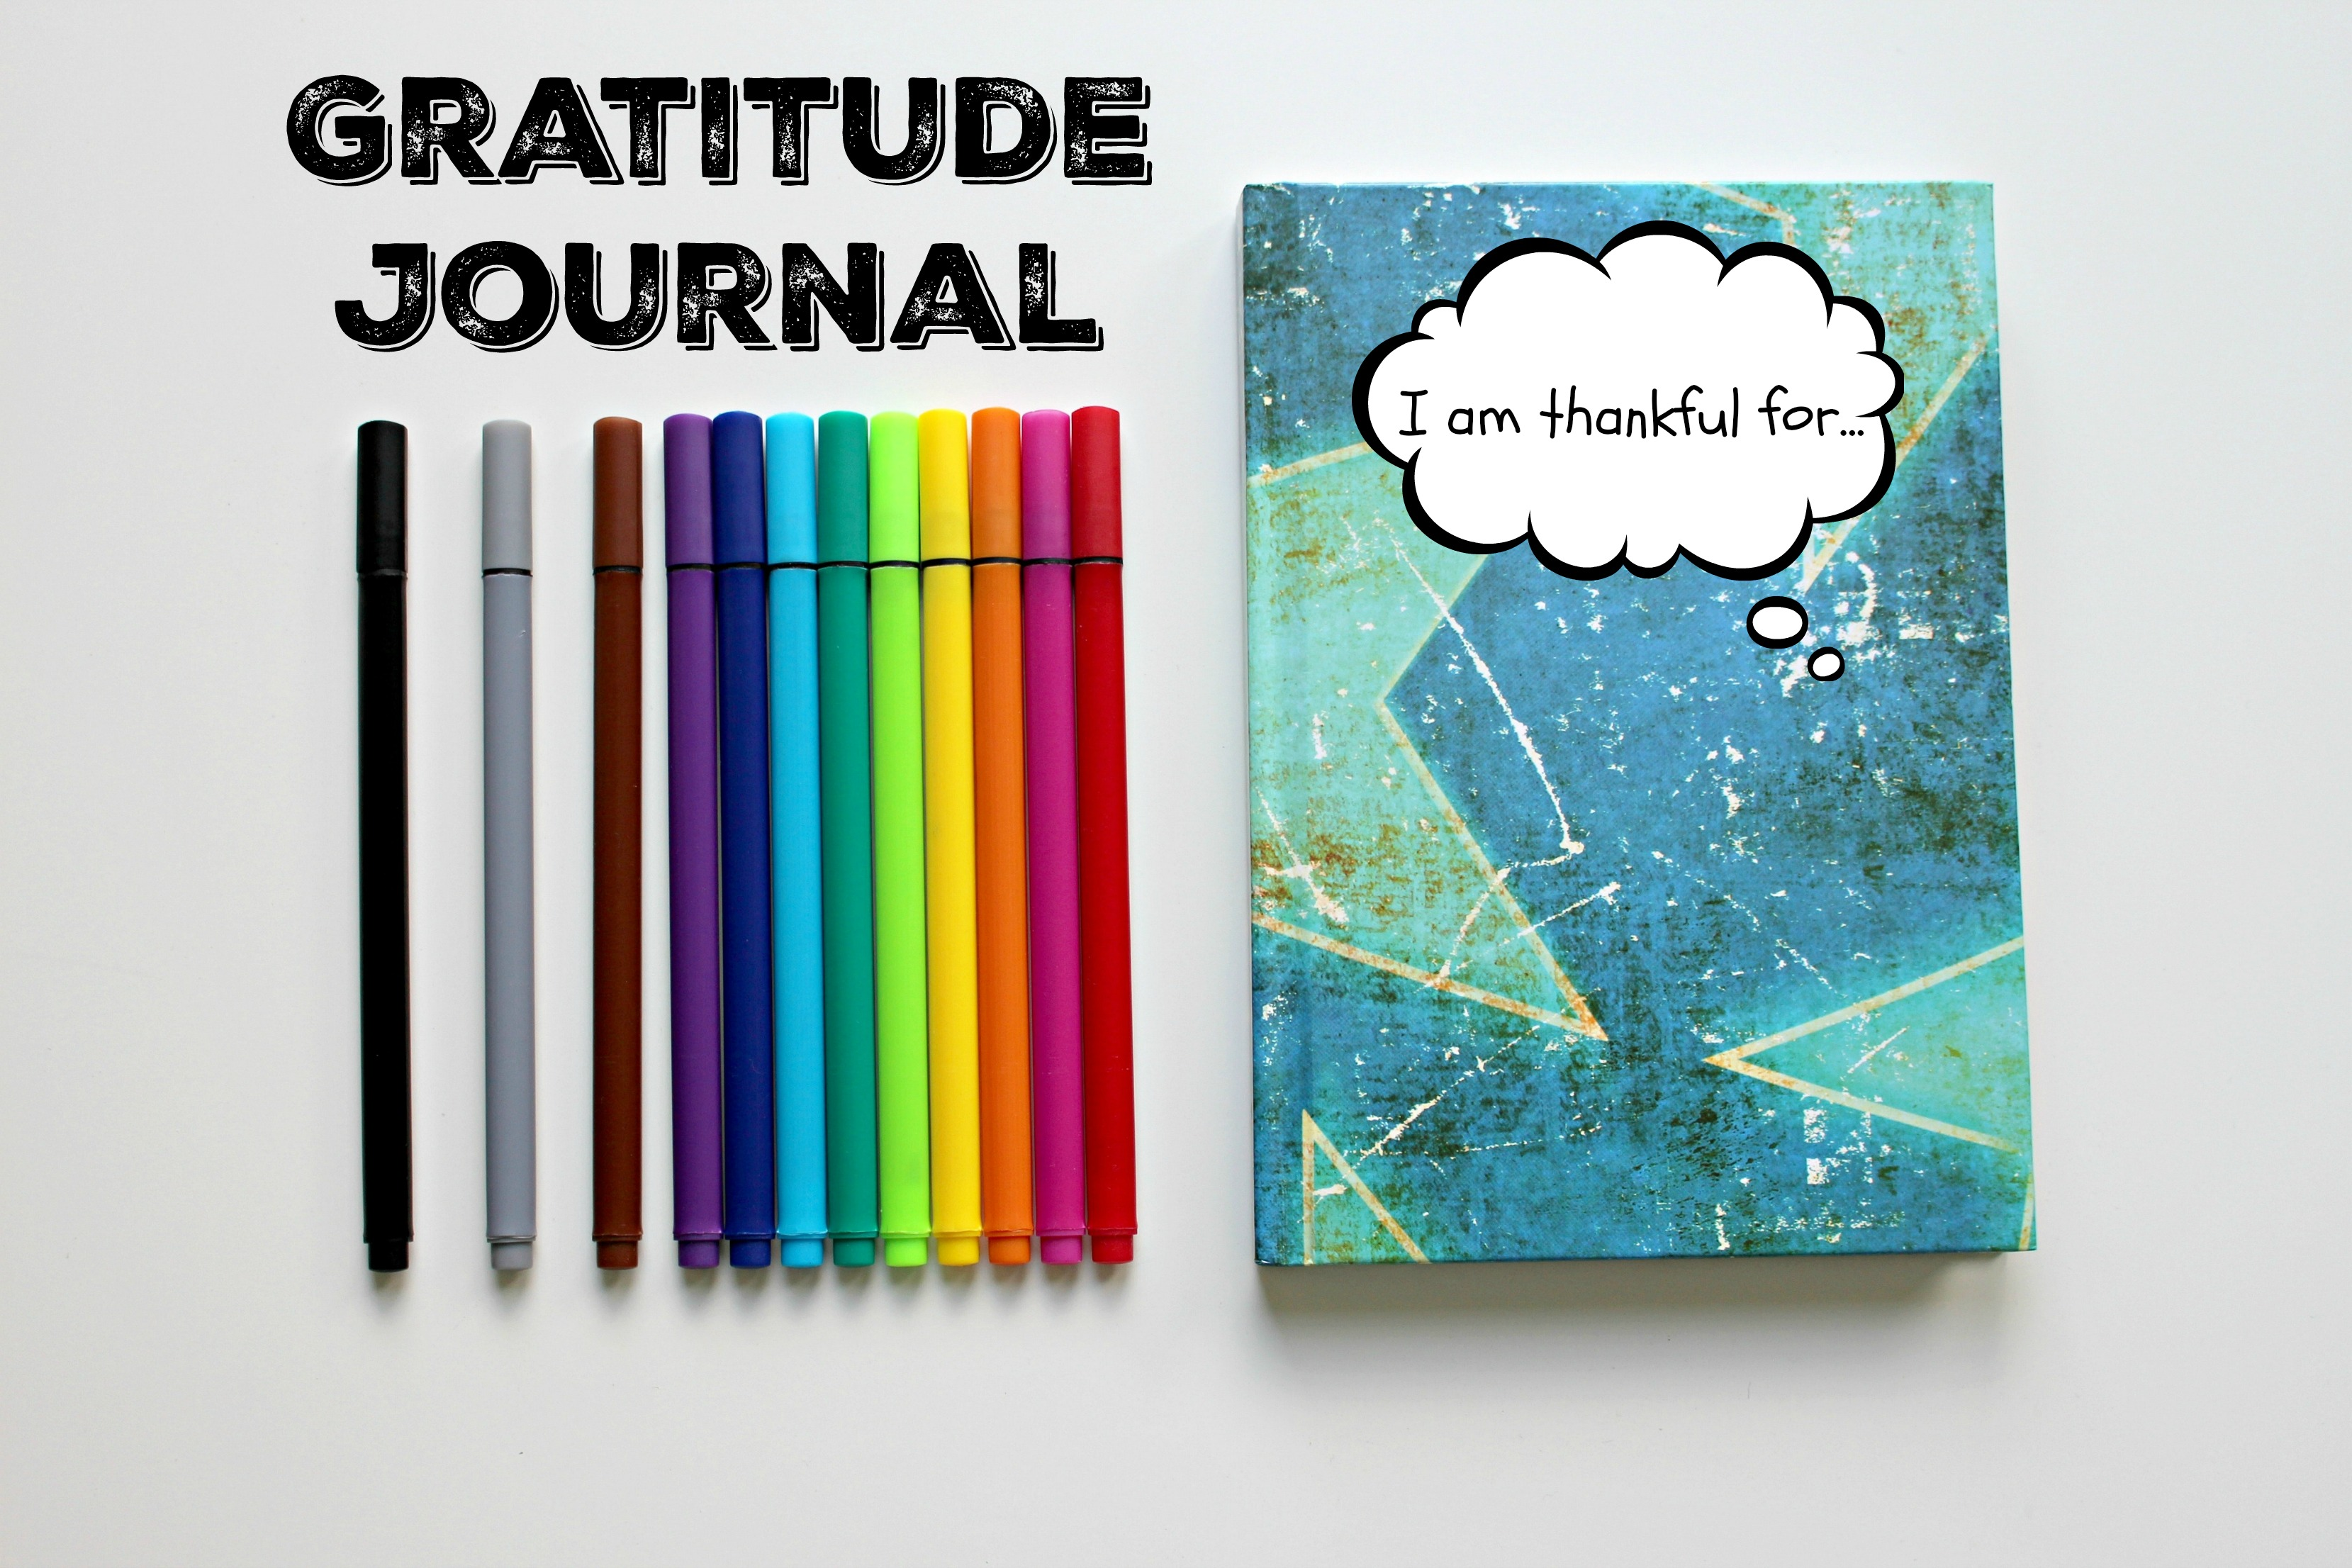 Pins & Notebook - 5 Ways to Keep Your Family Focused on Gratitude this Holiday